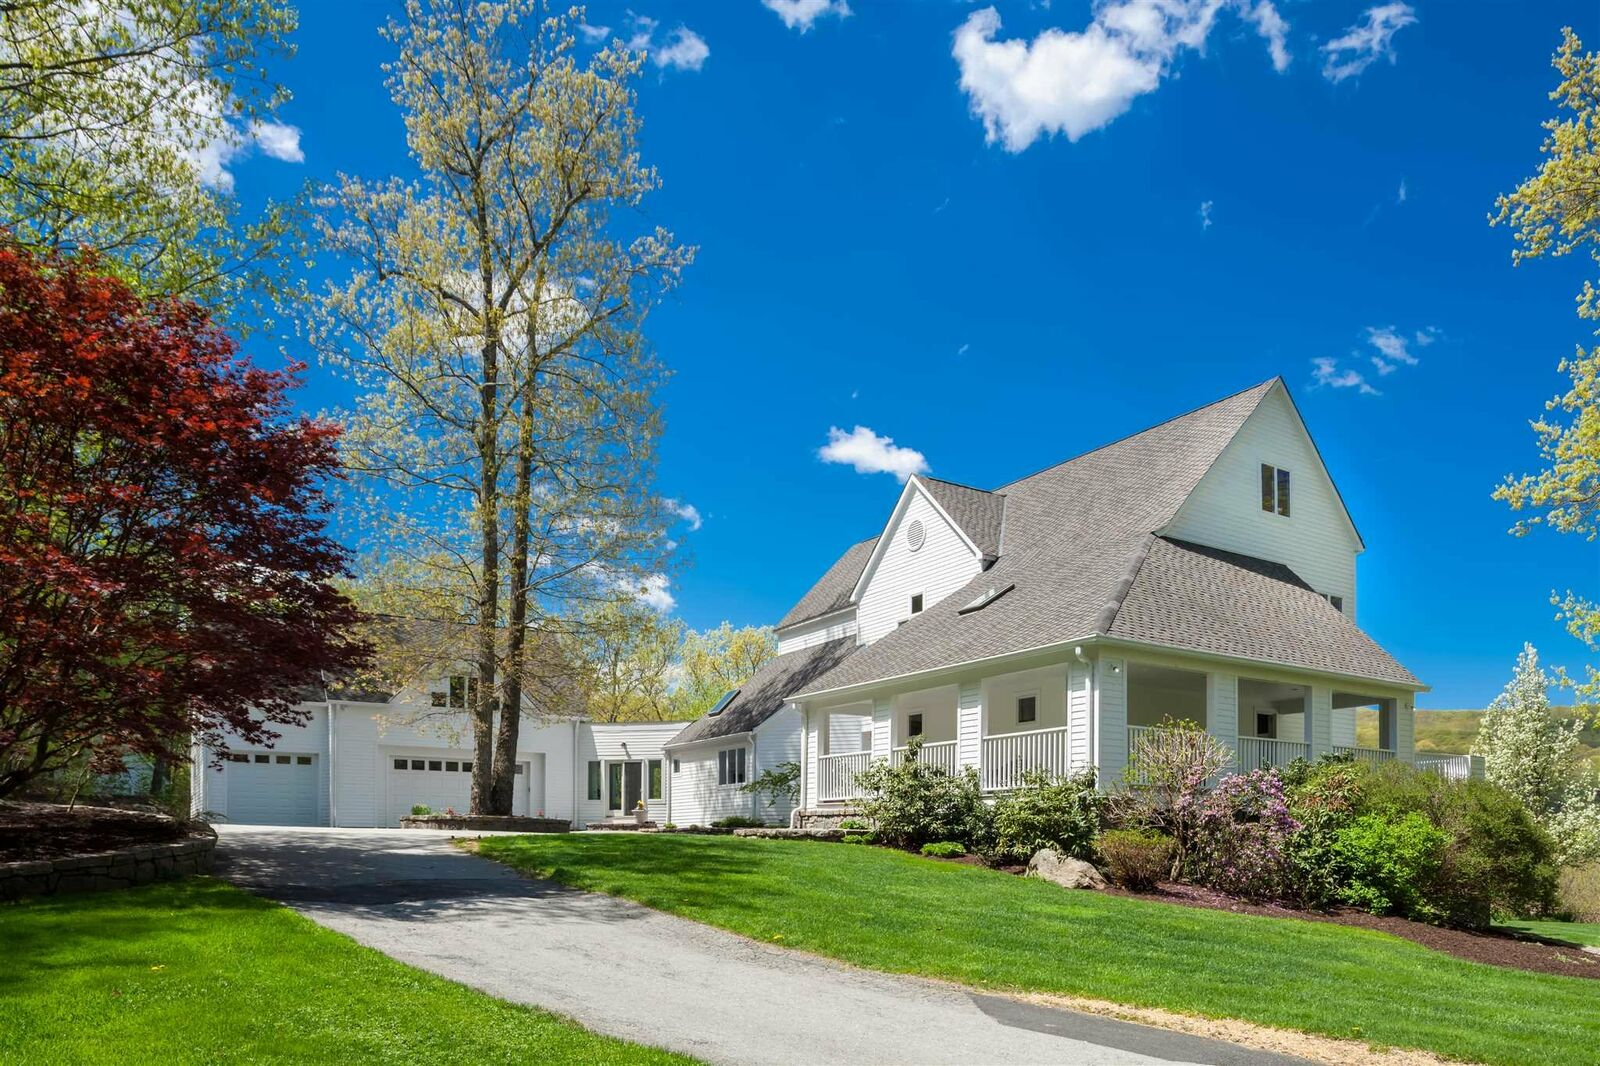 3302 Route 55, Pawling, NY 12564 - 6 bed/7 bath